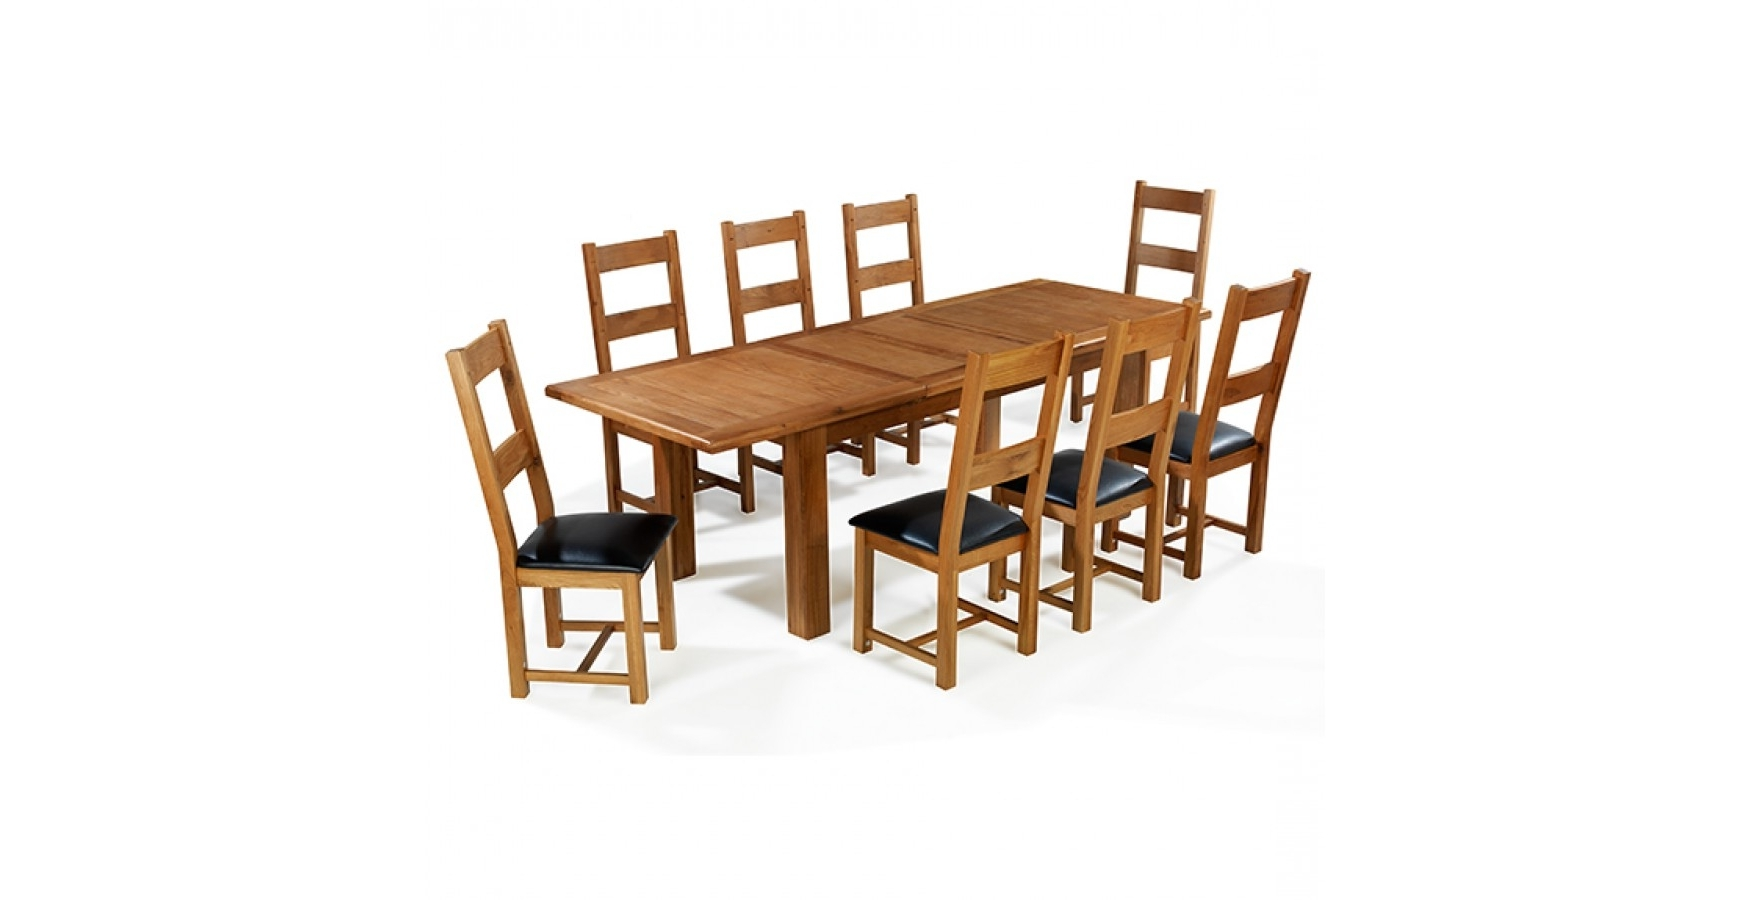 Oak Dining Tables And 8 Chairs Within Favorite Emsworth Oak 180 250 Cm Extending Dining Table And 8 Chairs (View 19 of 25)